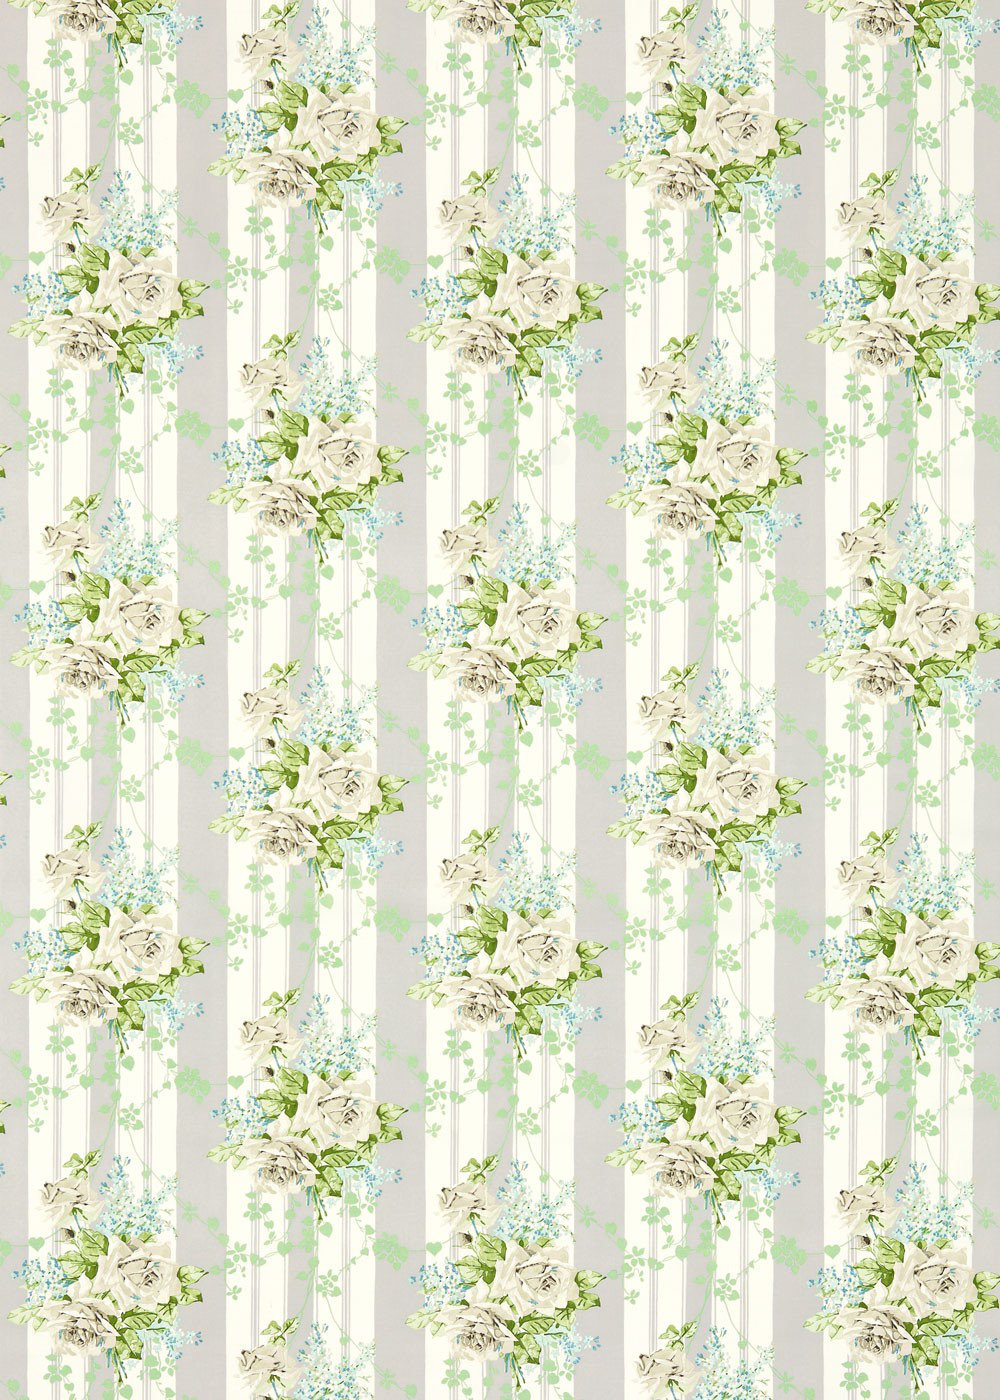 Sanderson Fabric Cecile Rose 224327